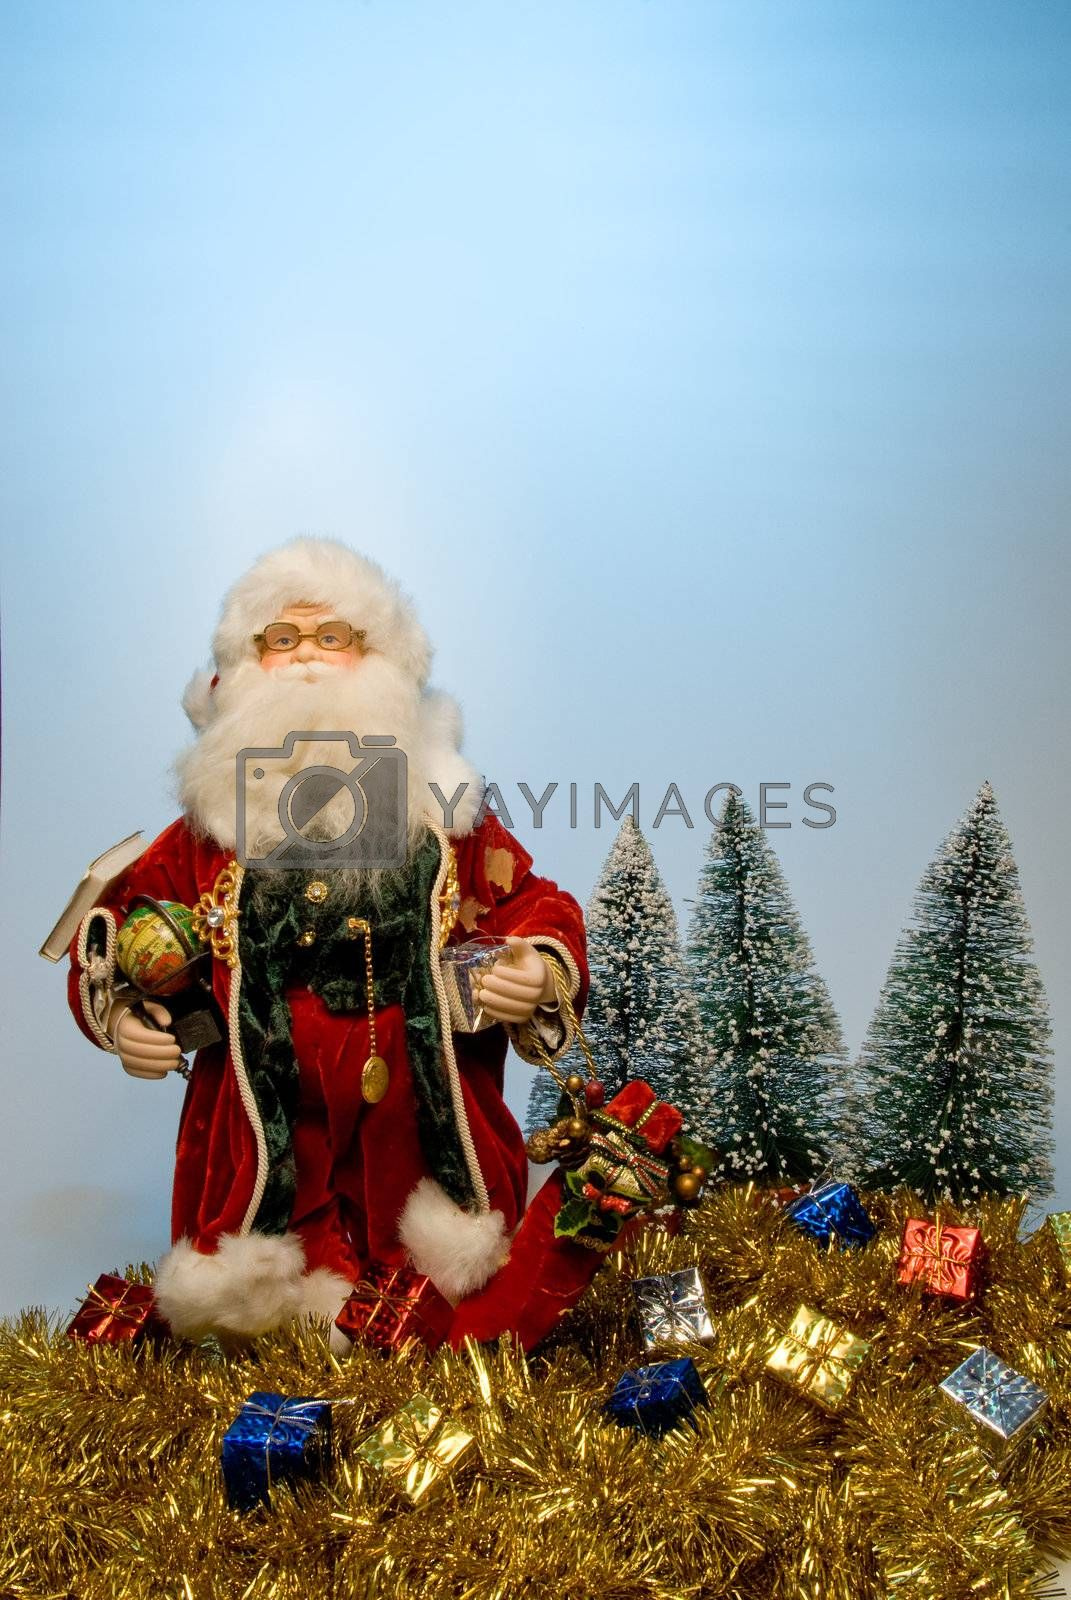 That joly old elf known better as Santa Claus.